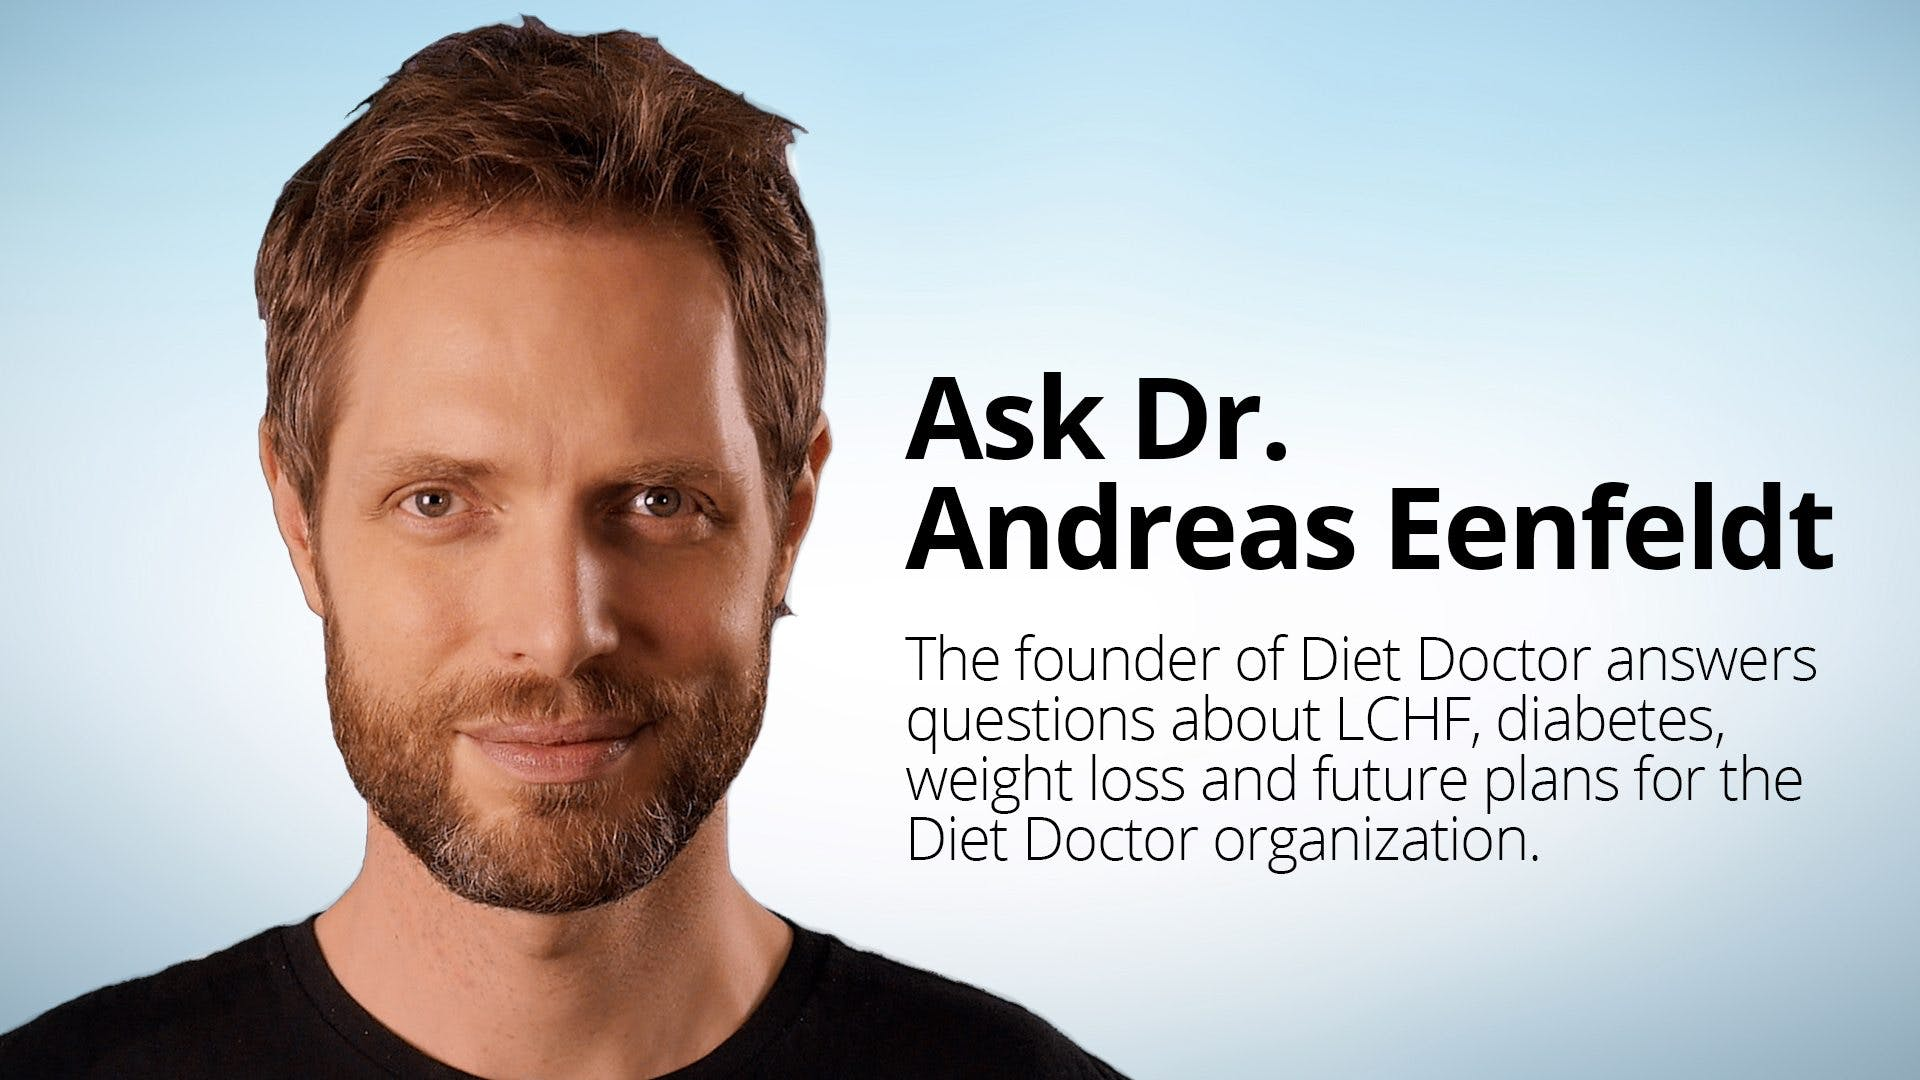 Q&A: I'm Not Losing Weight on LCHF – What Should I Do?